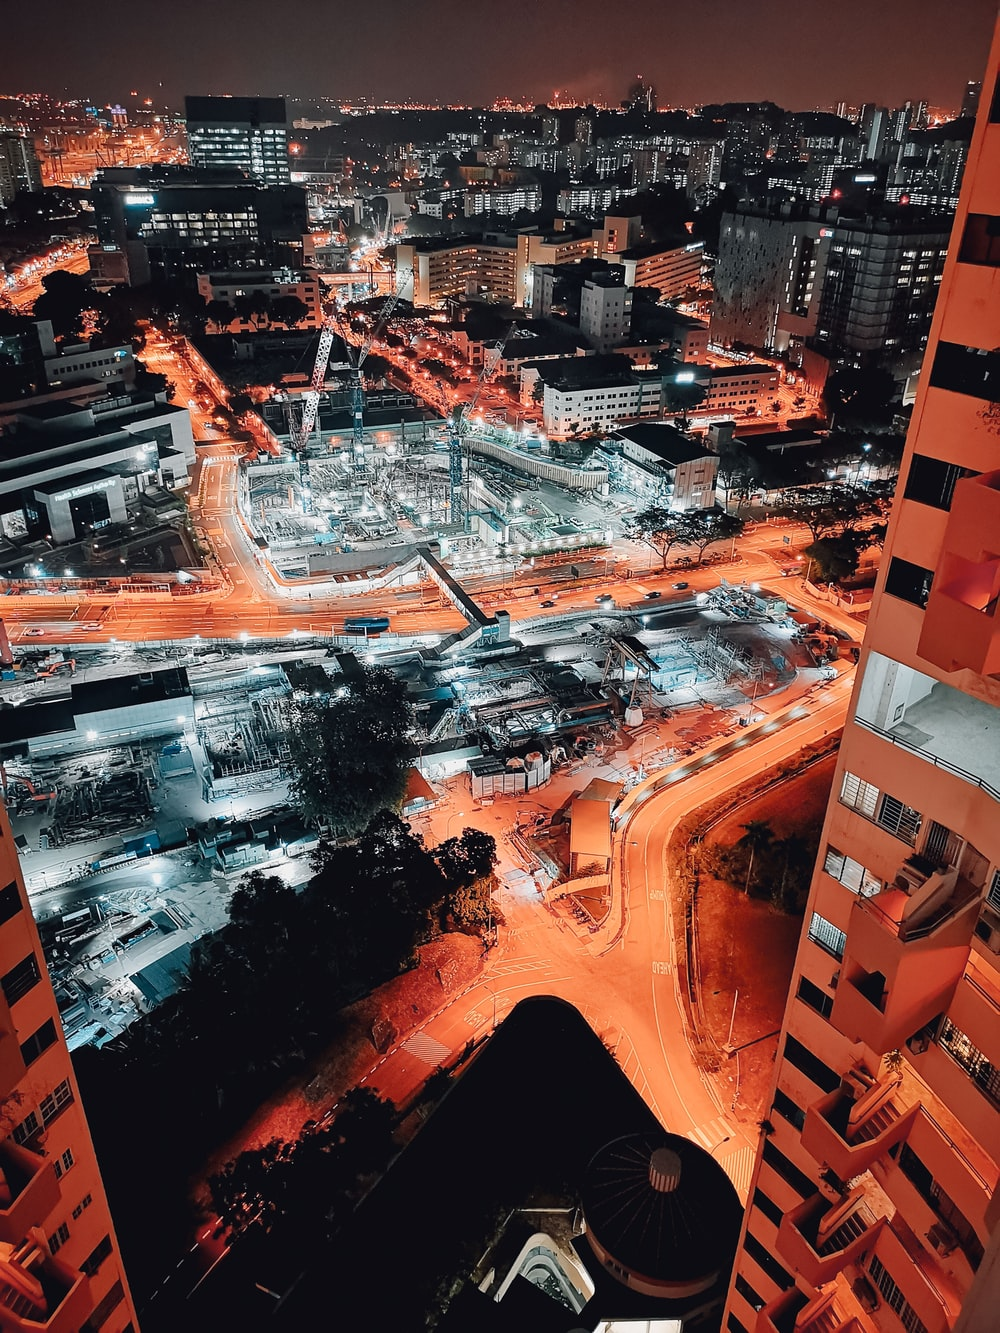 aerial photo of city buildings during nighttime